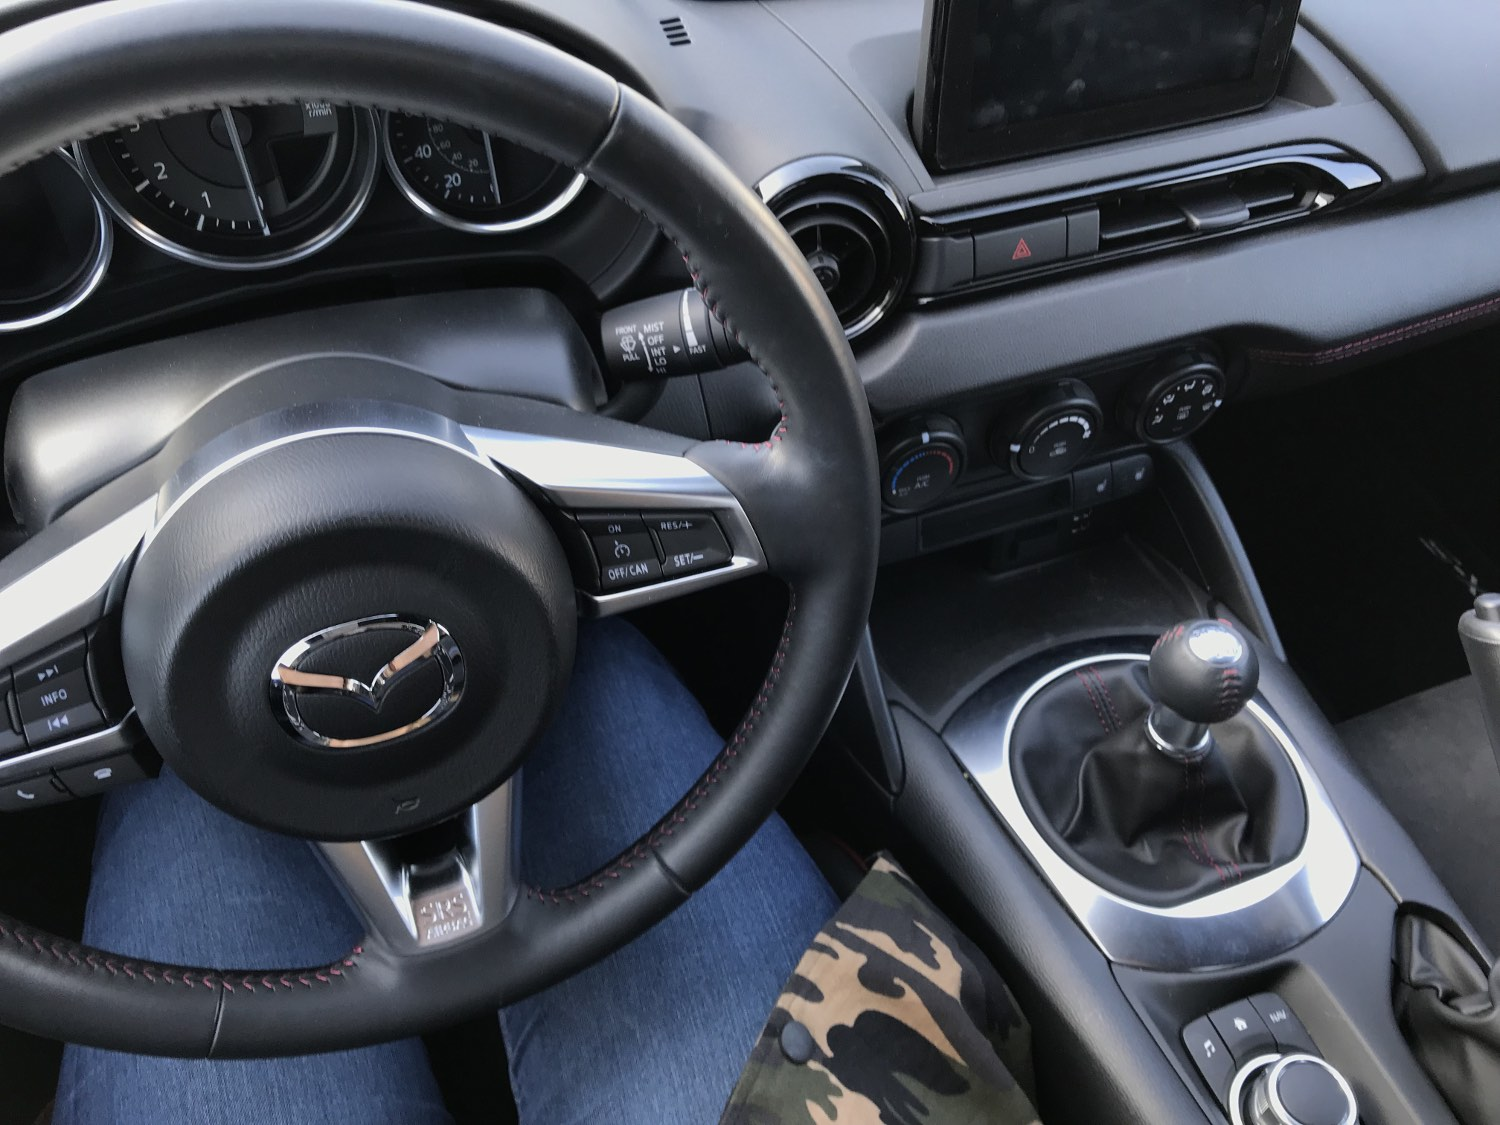 2018 Mazda MX-5 Miata Club Drivers Seat